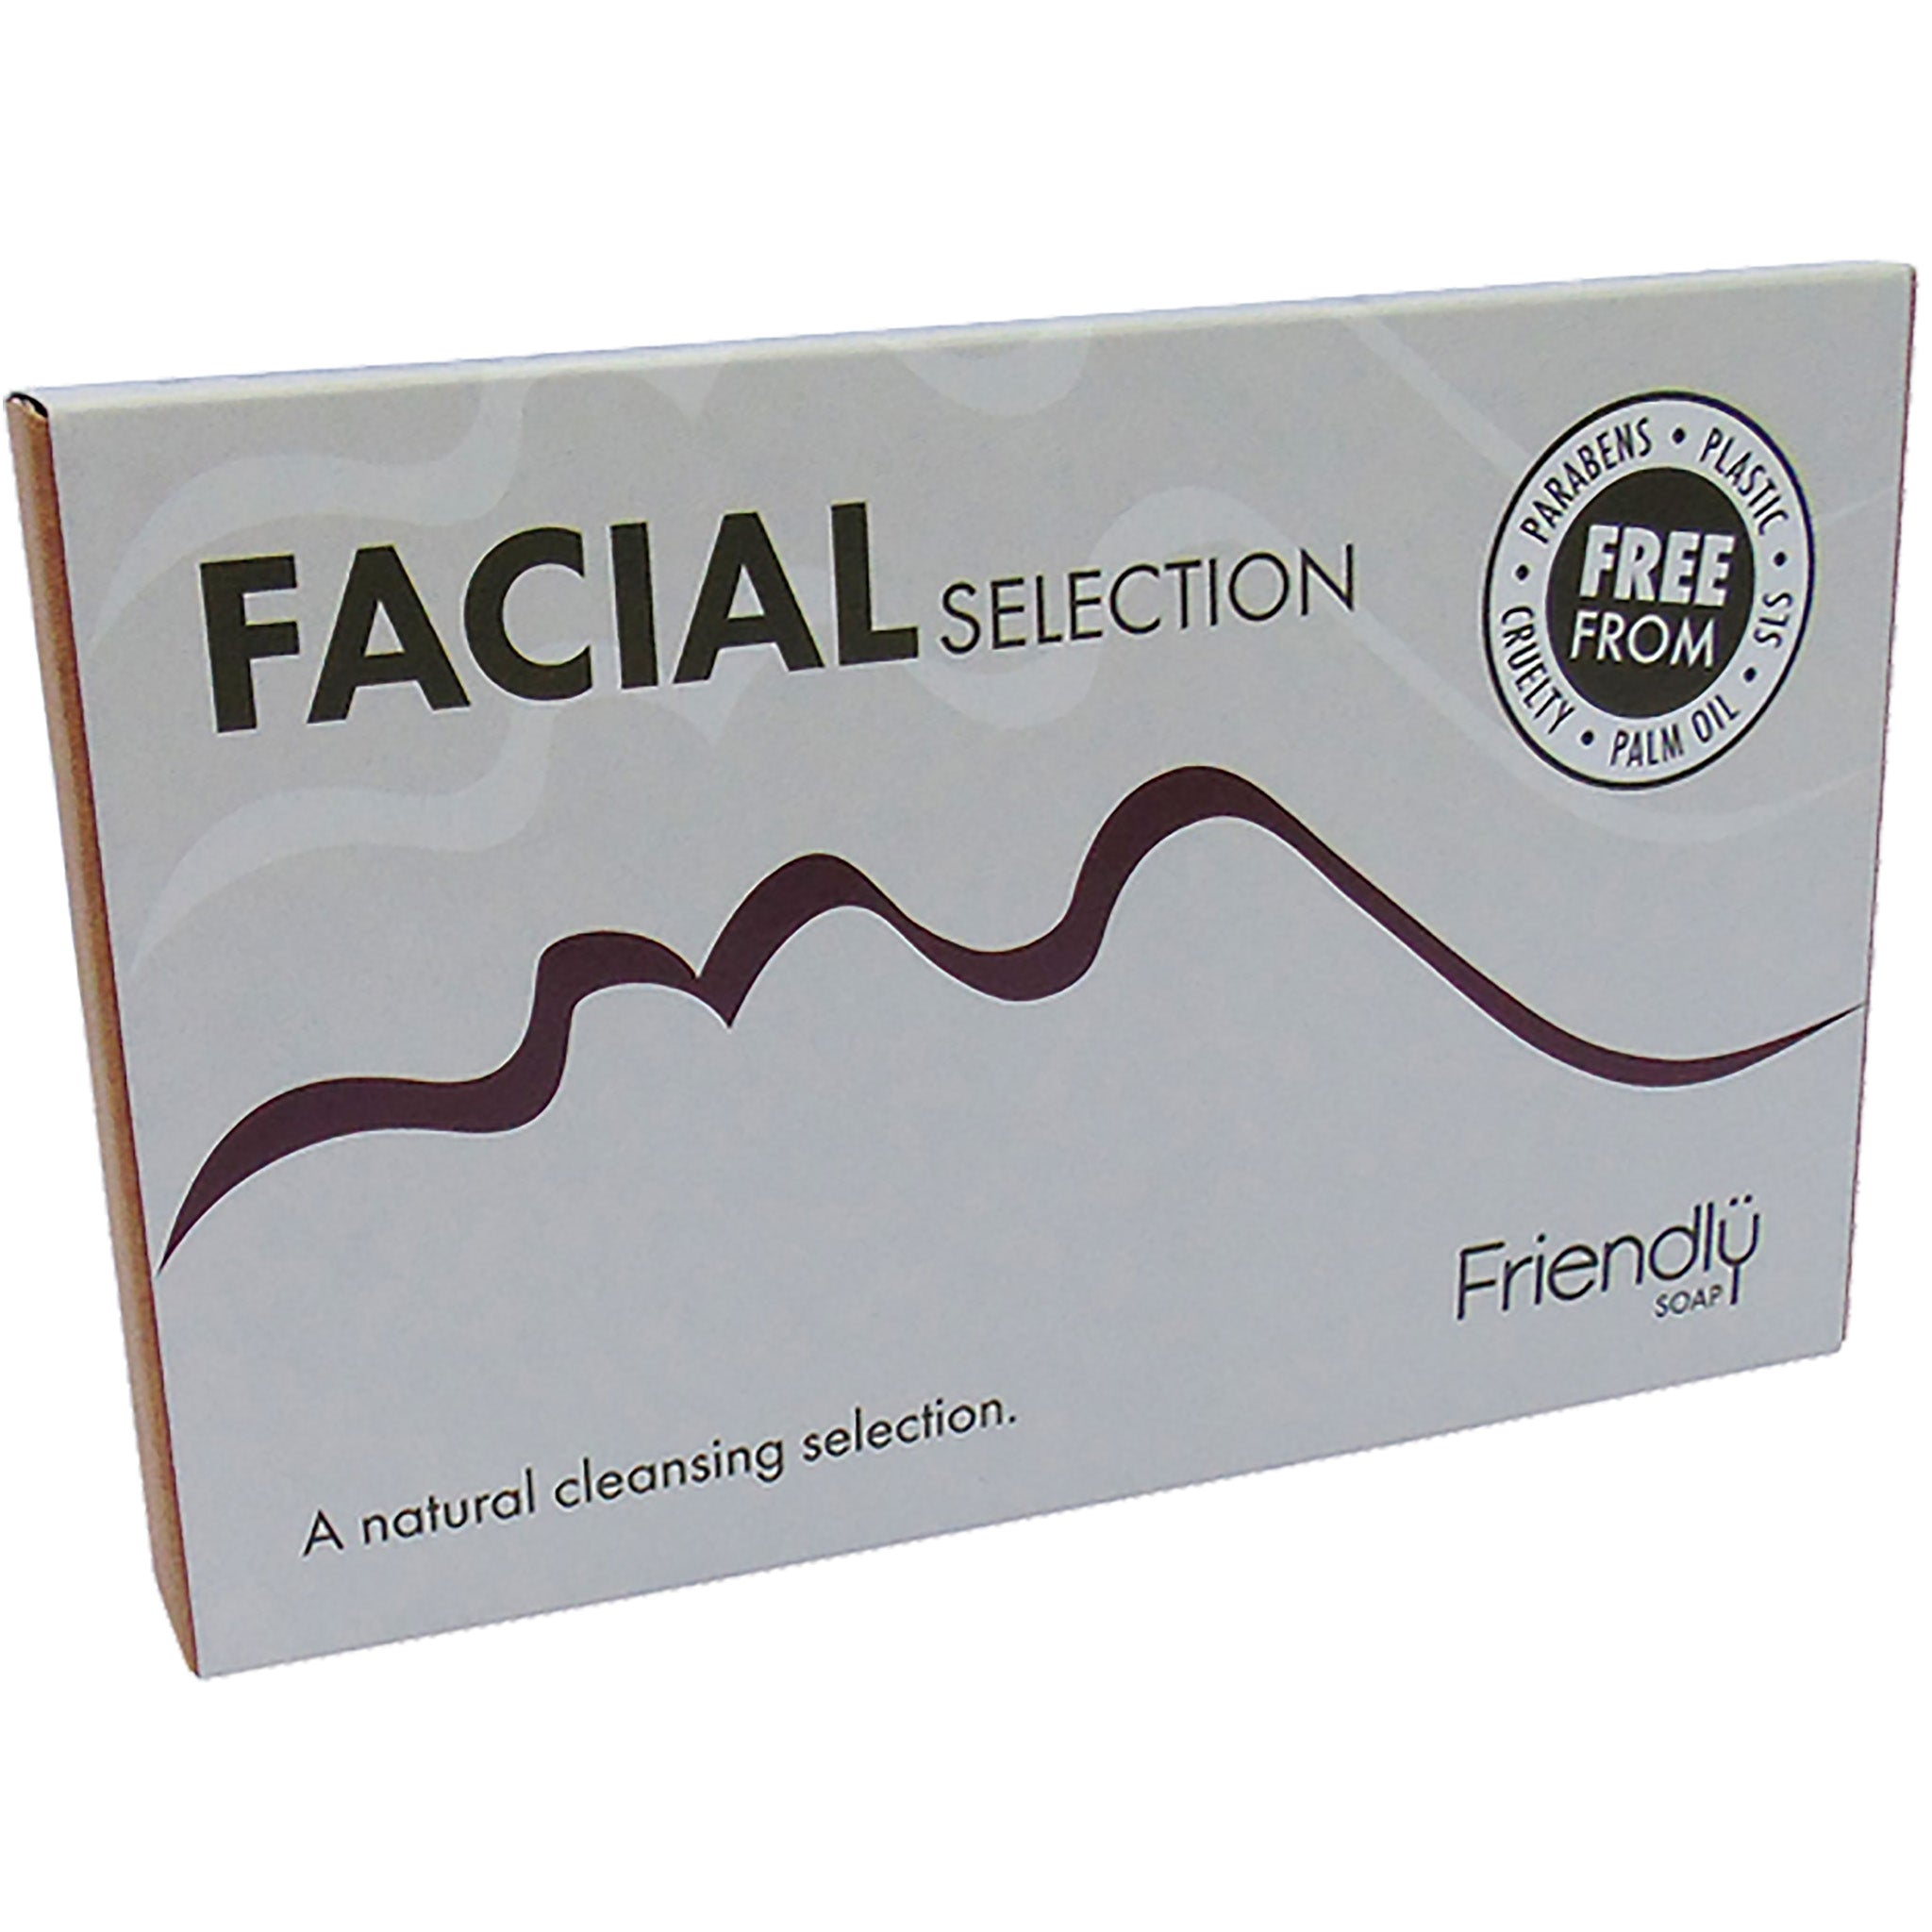 Facial Selection box